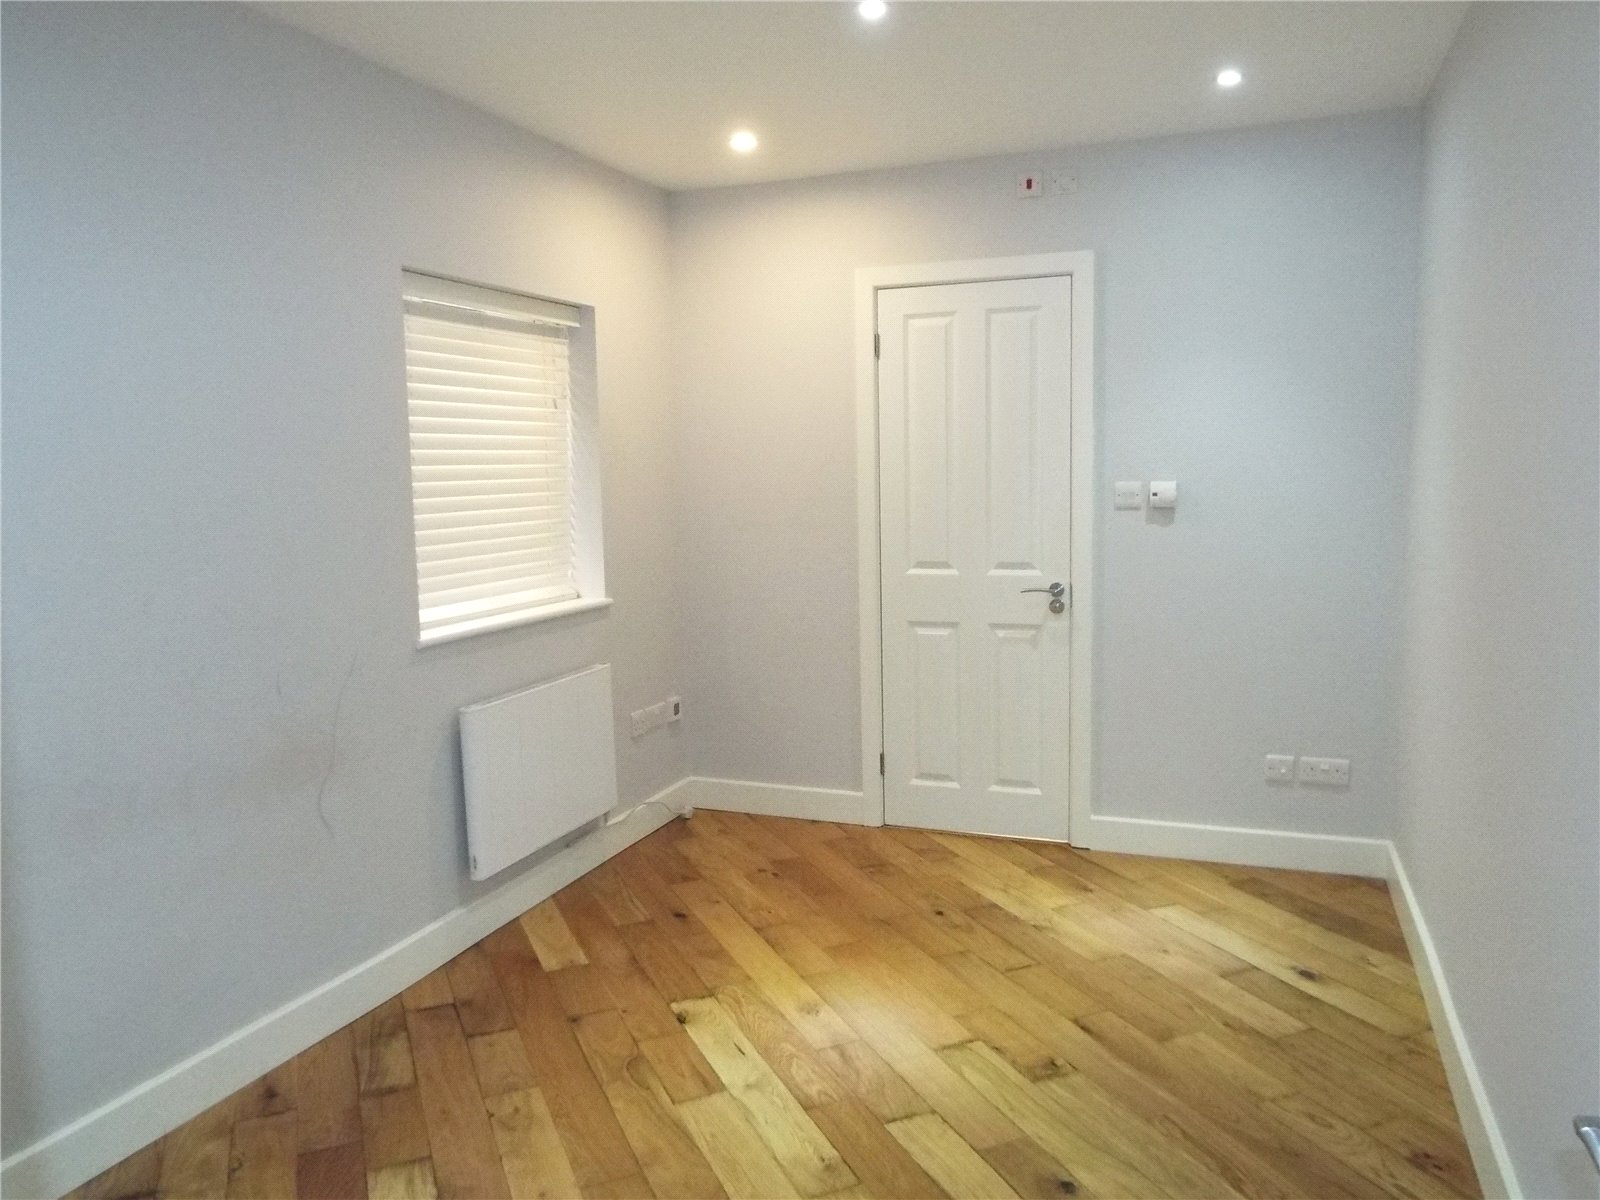 1 bed house to rent in Potters Bar, EN6 1EY 2